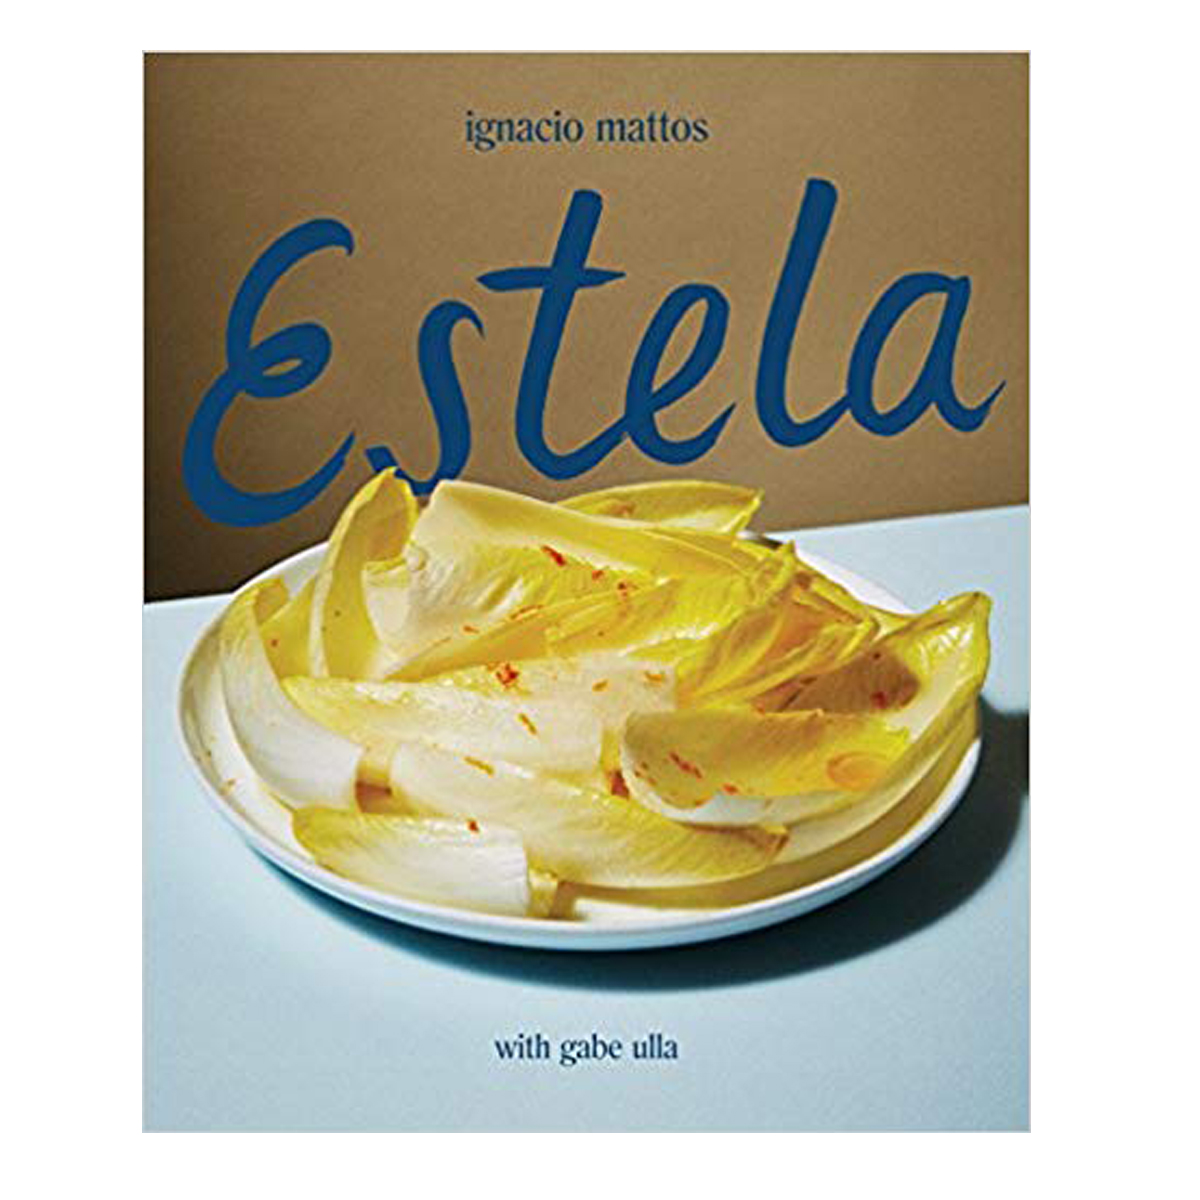 ESTELA cookbook